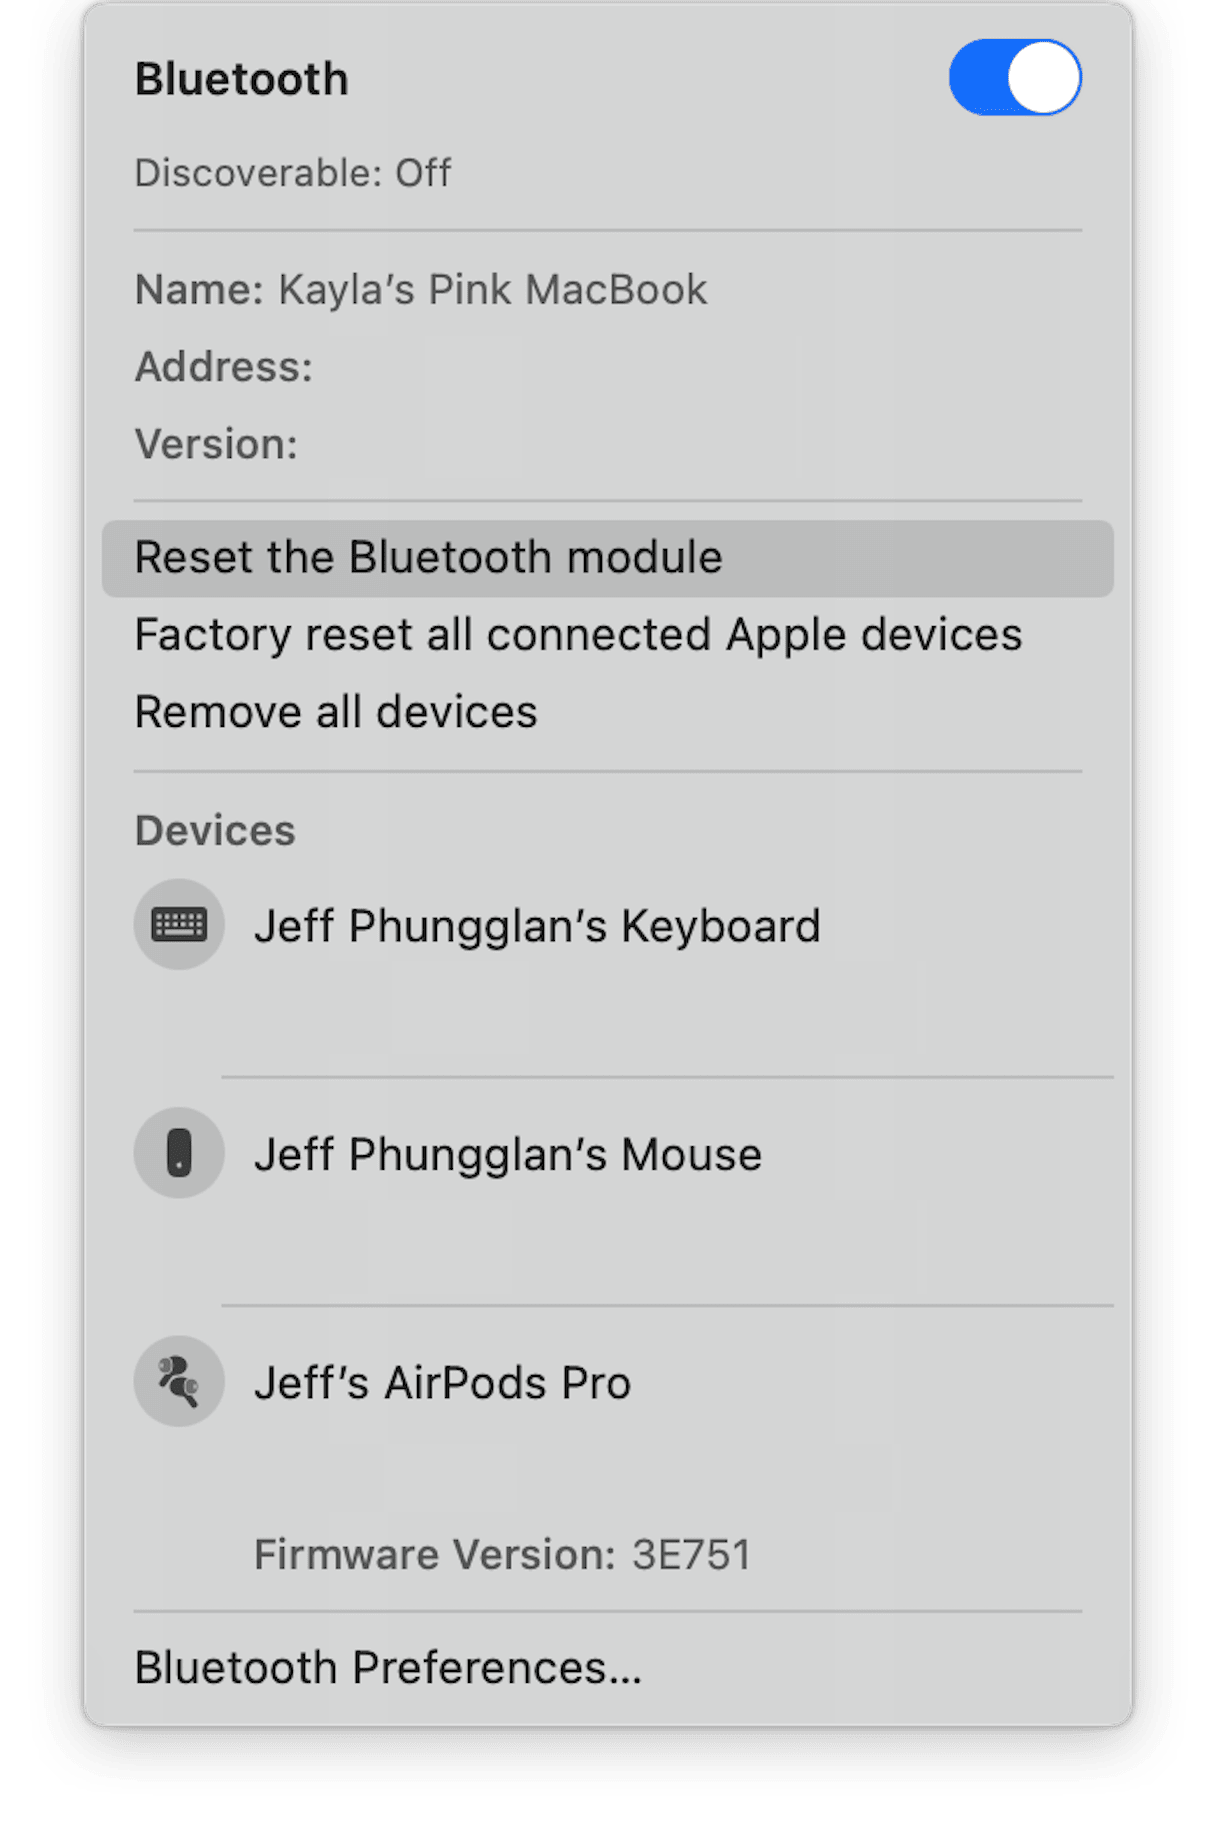 How to reset the Bluetooth module